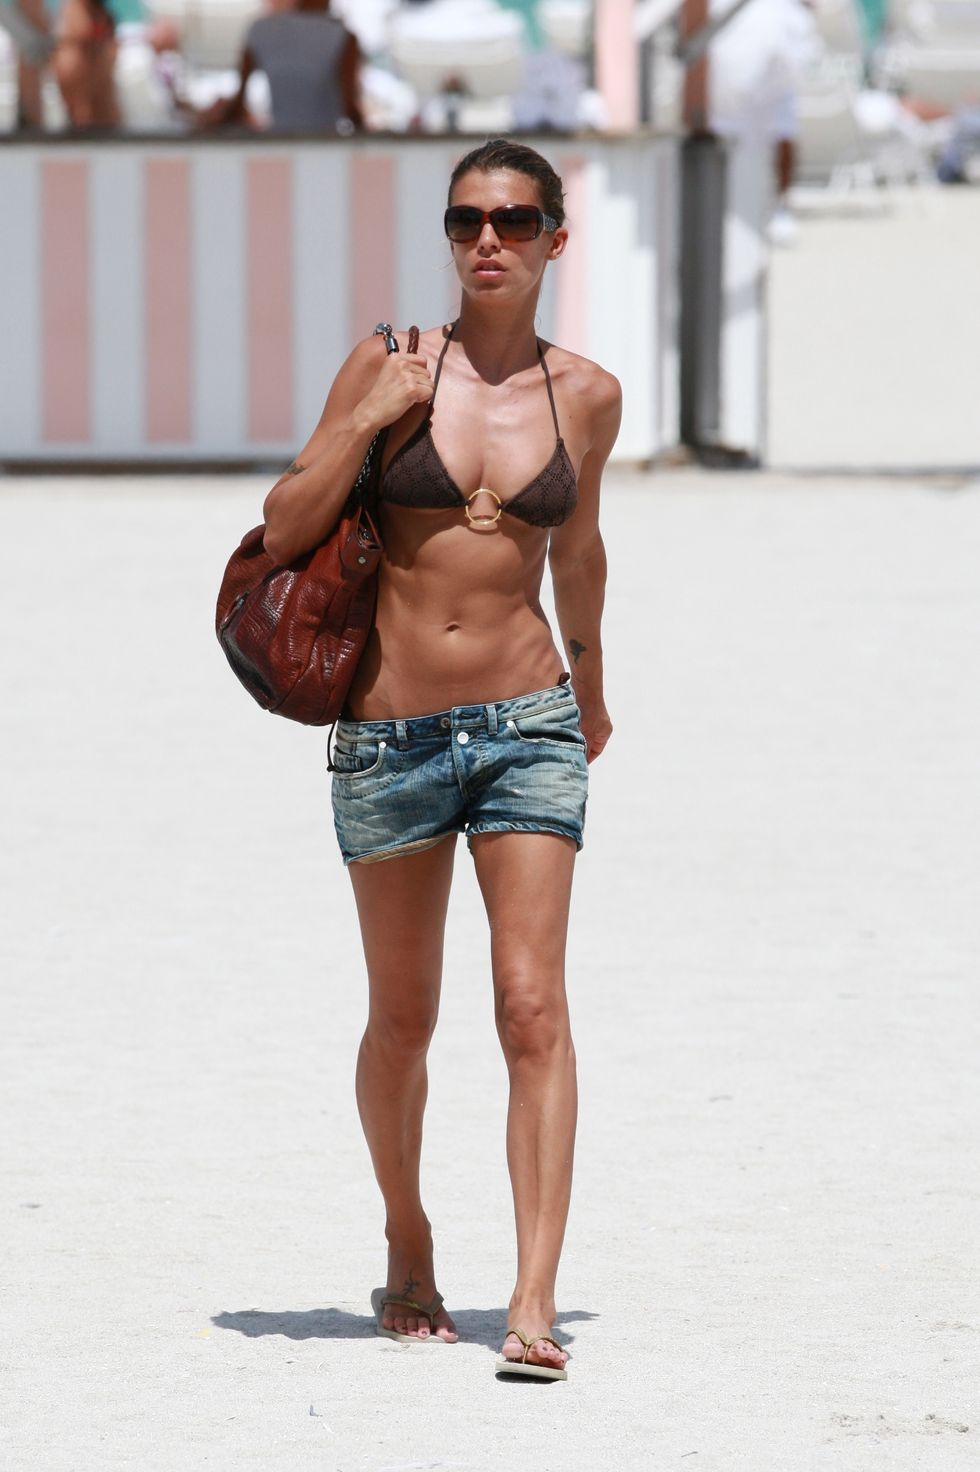 elisabetta-canalis-in-bikini-on-the-beach-in-miami-09